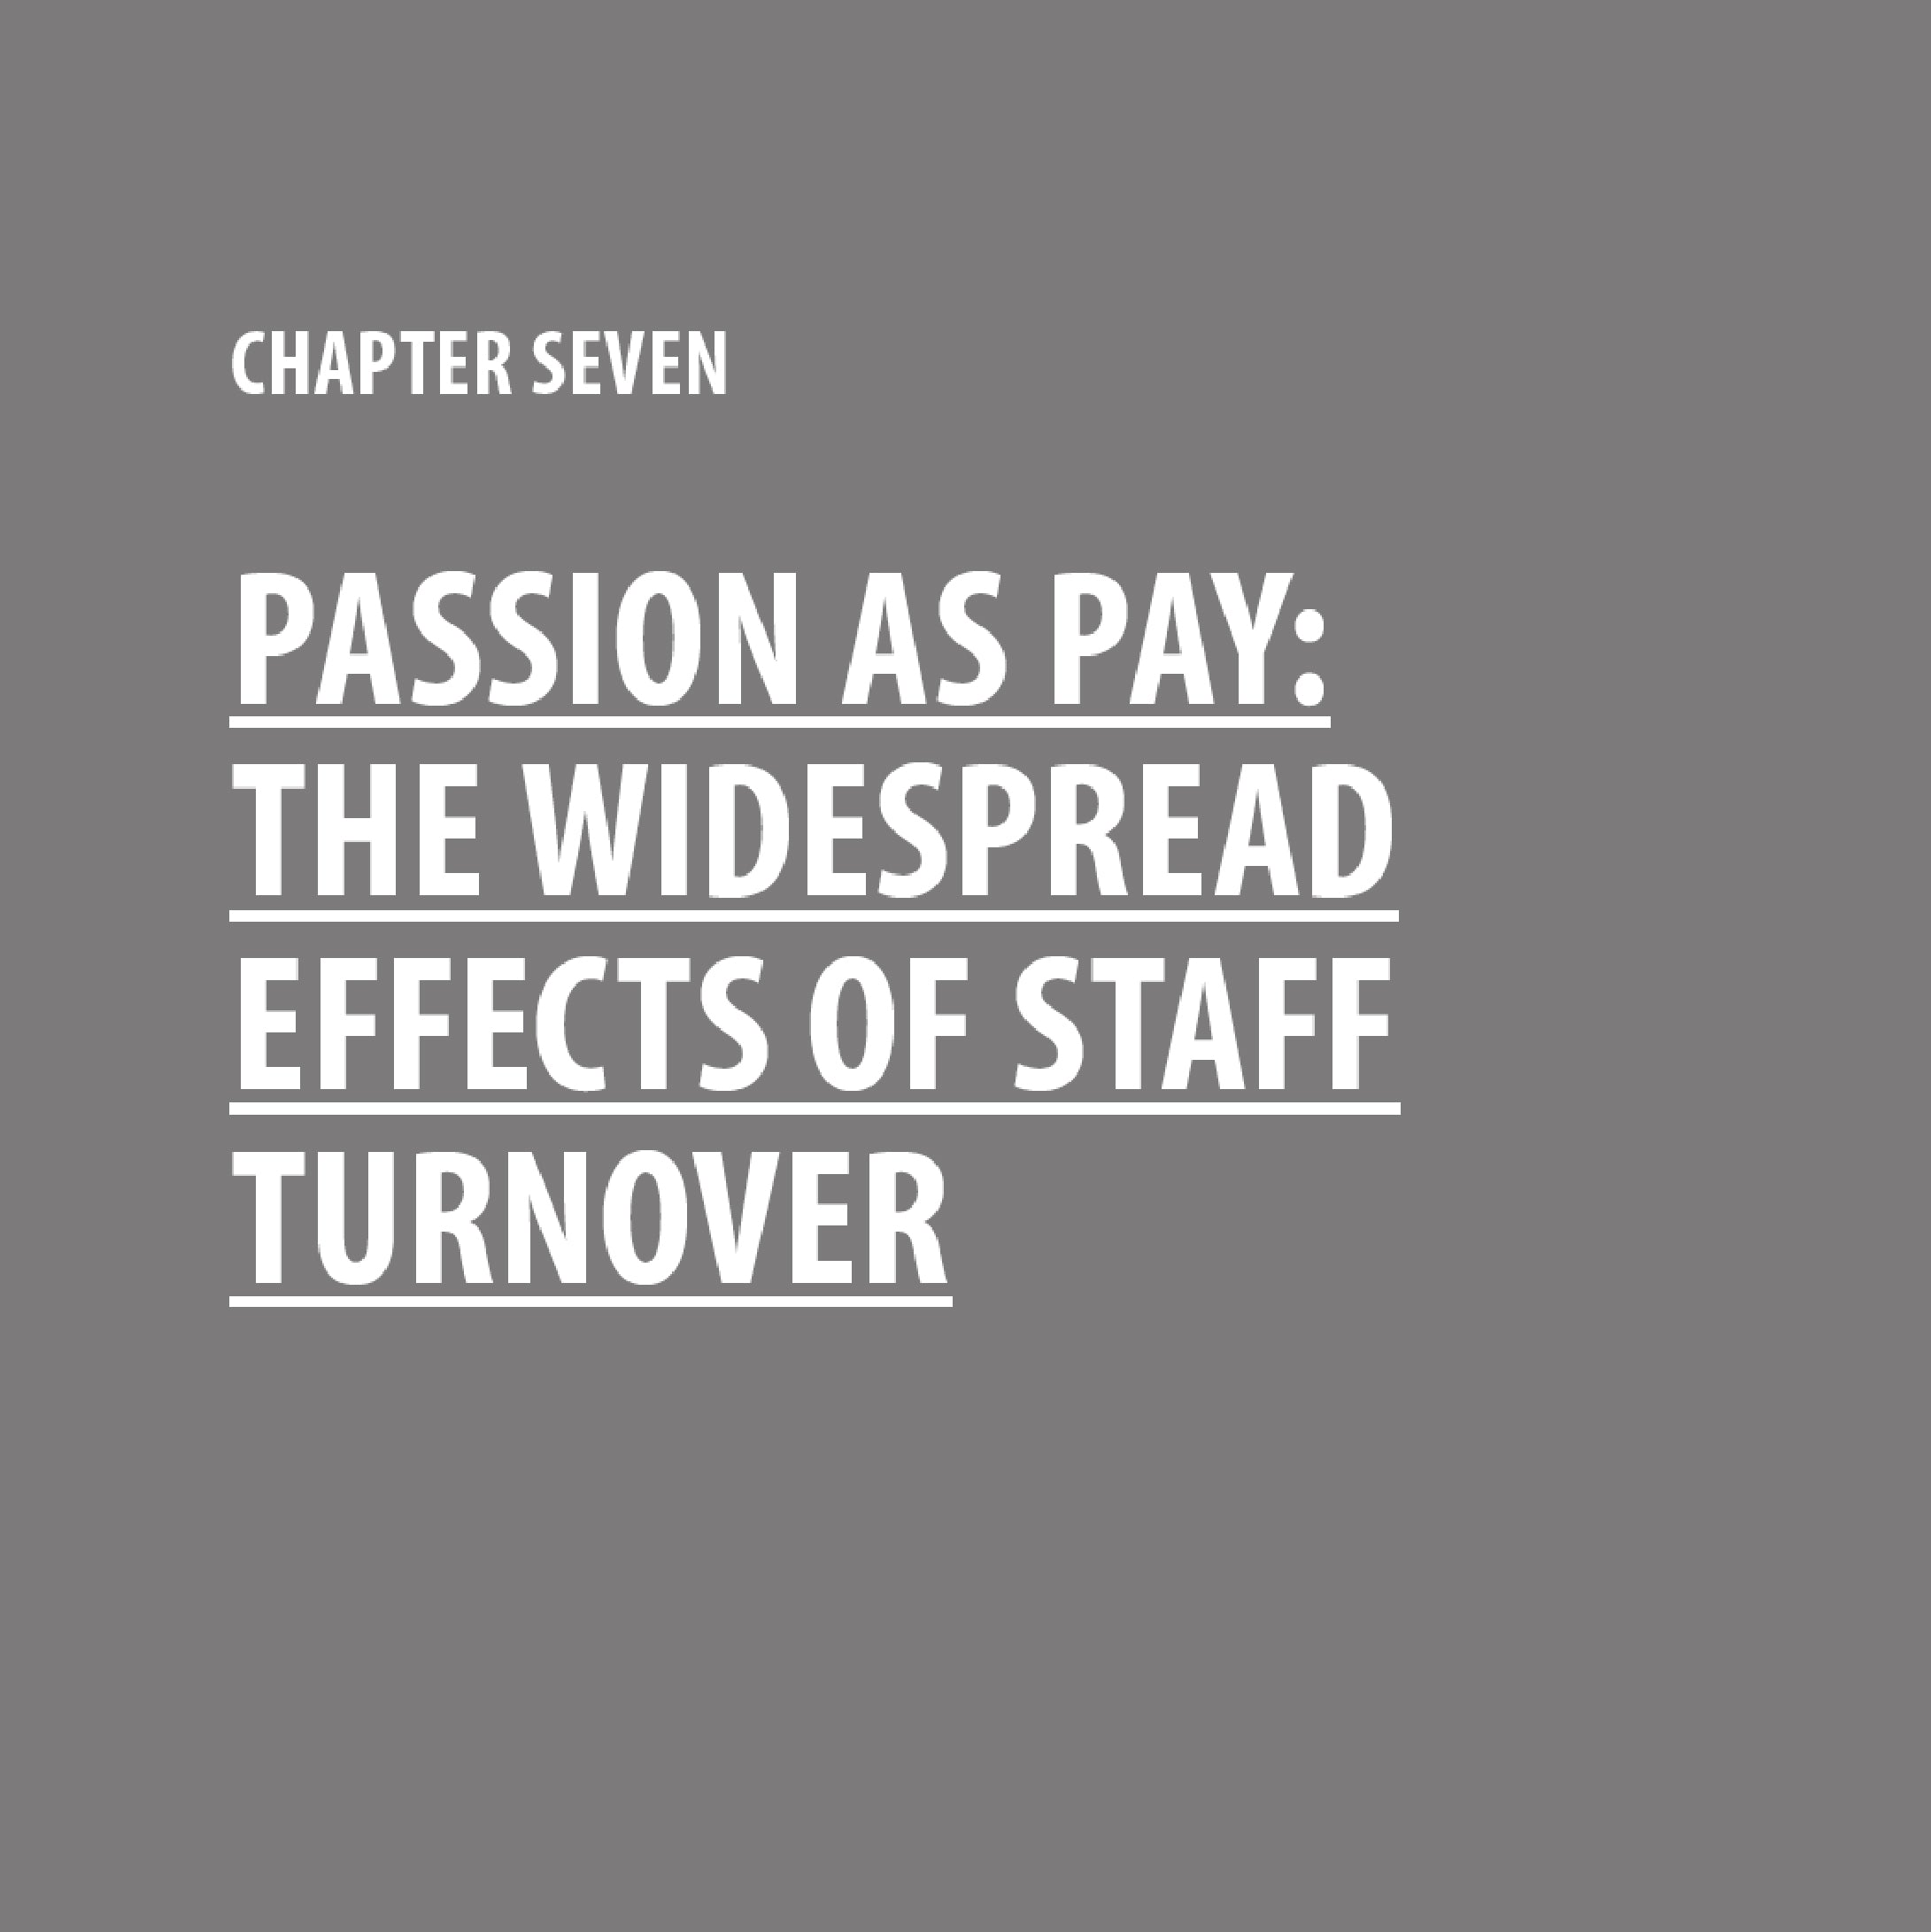 Passion as Pay